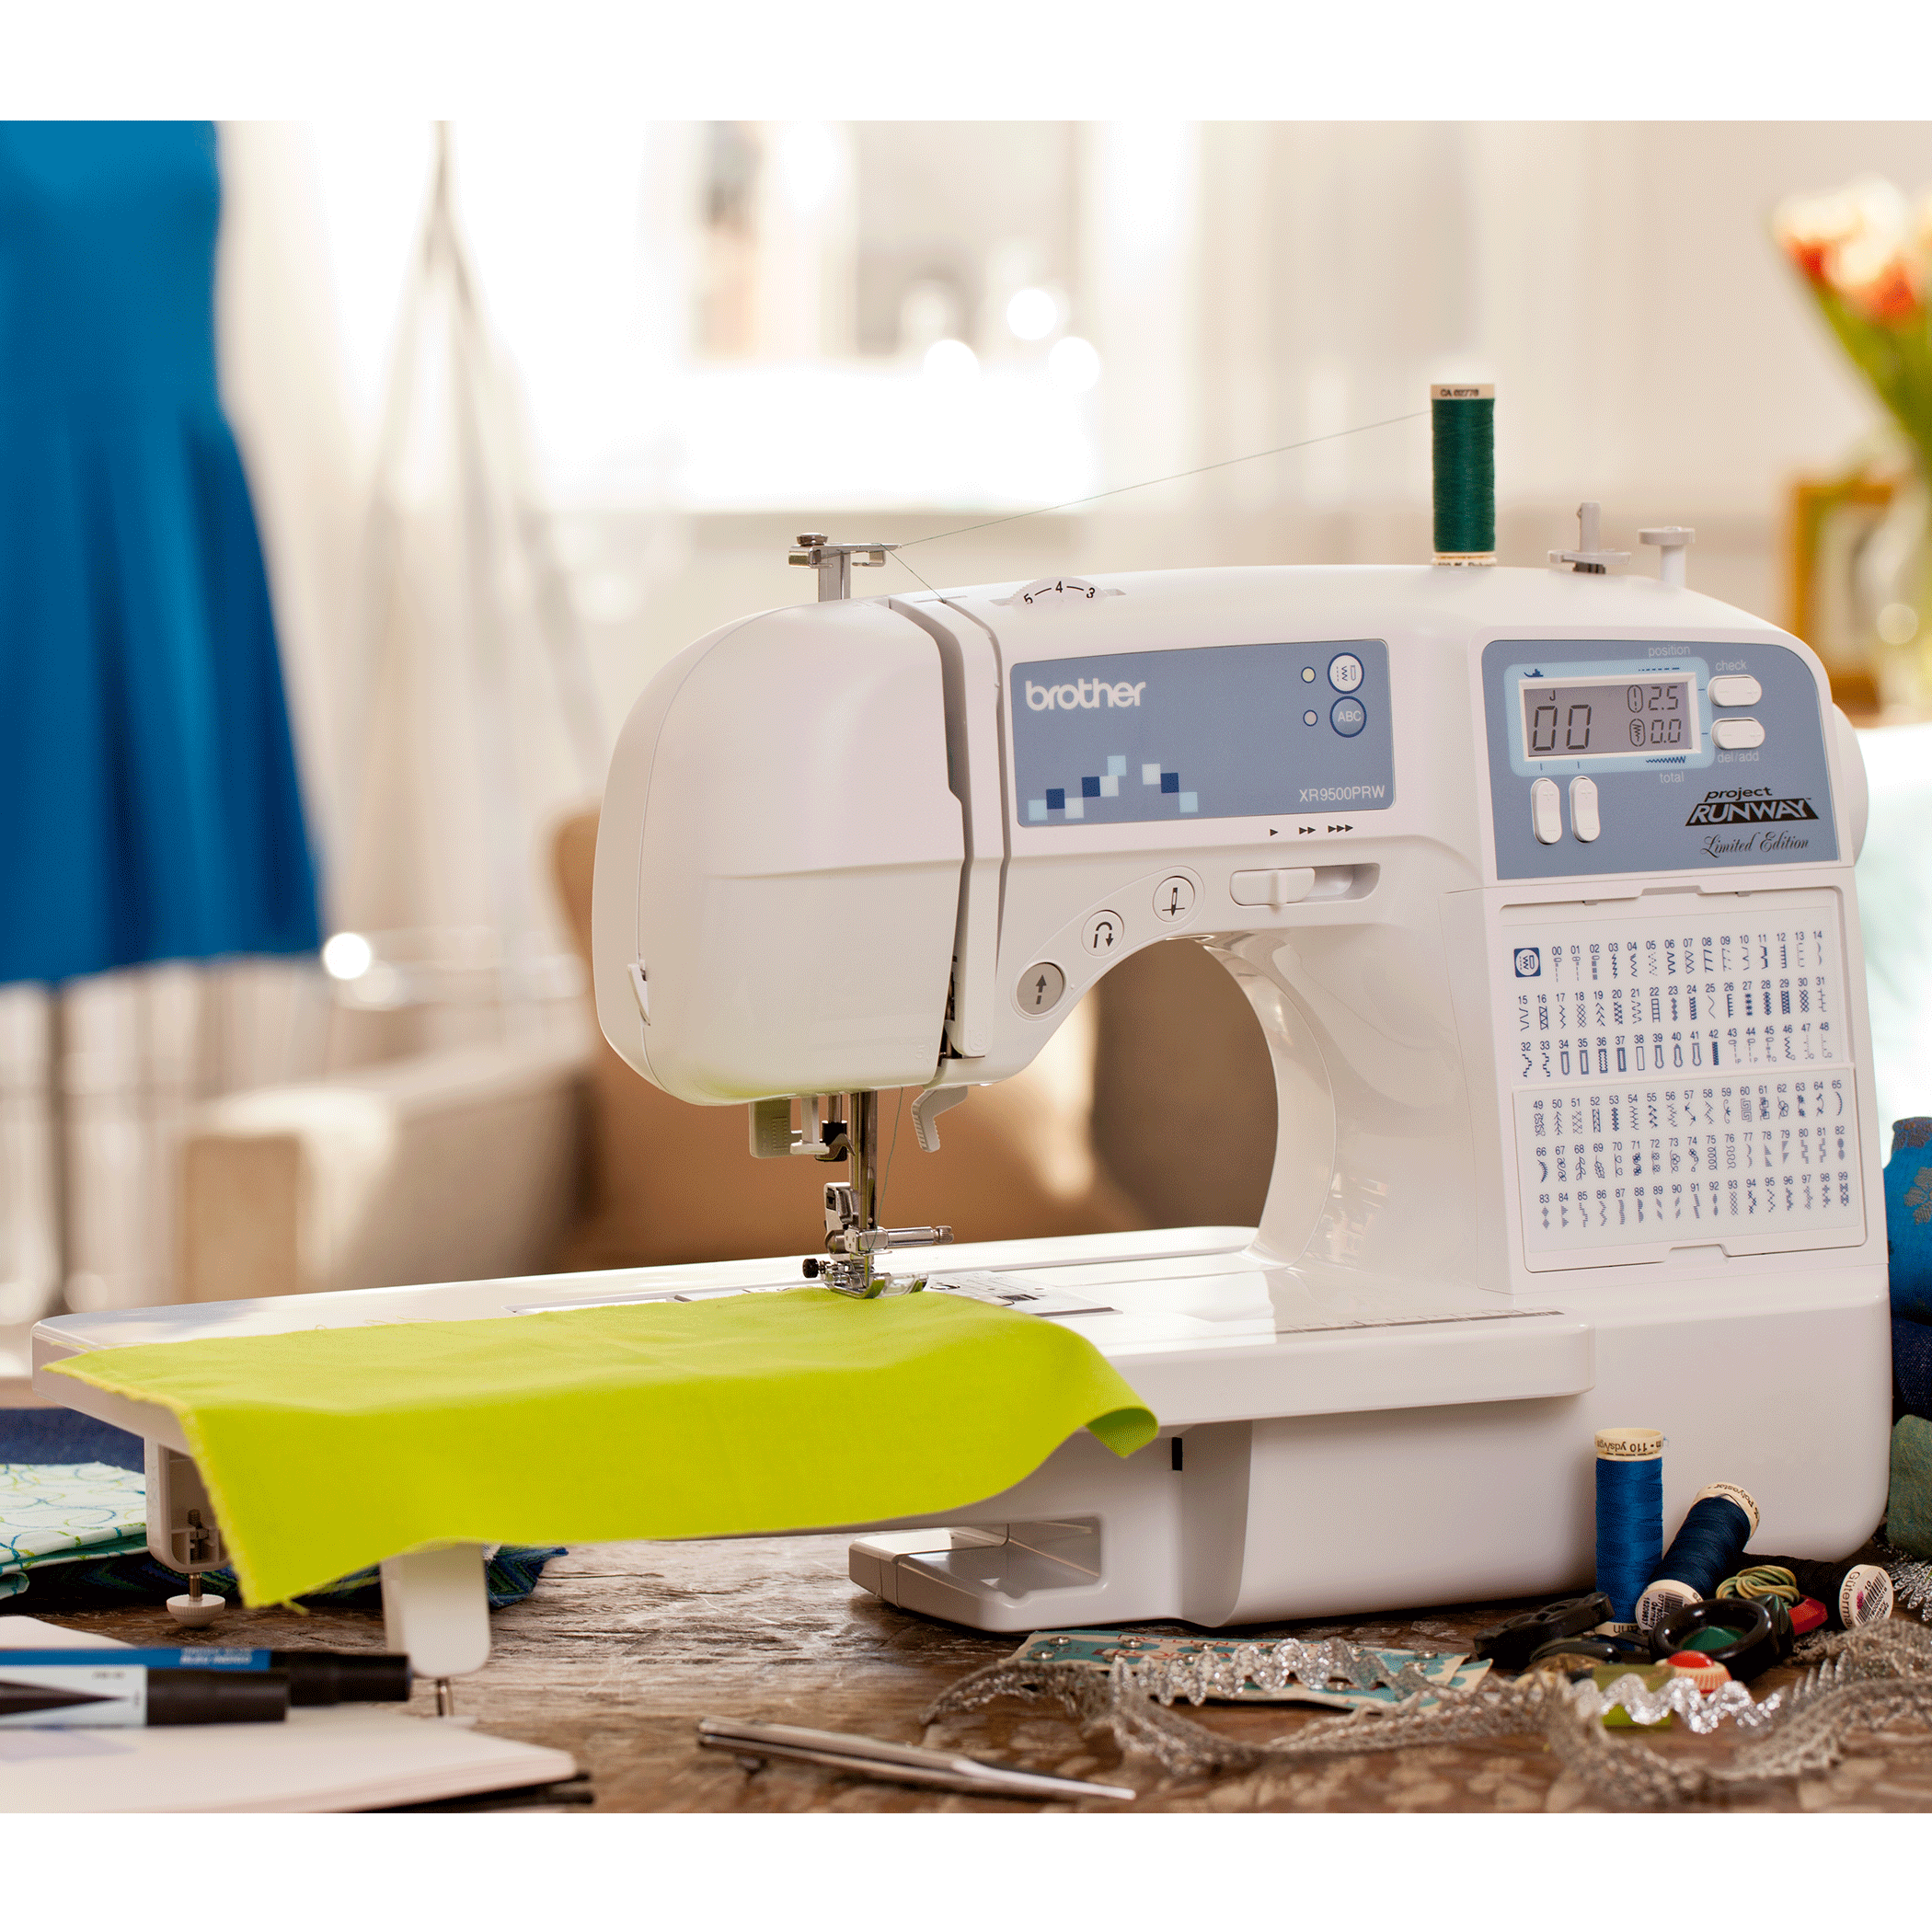 Limited Edition Project Runway Sewing Machine With 100 Built In Stitches And Quilting Table Xr9500prw